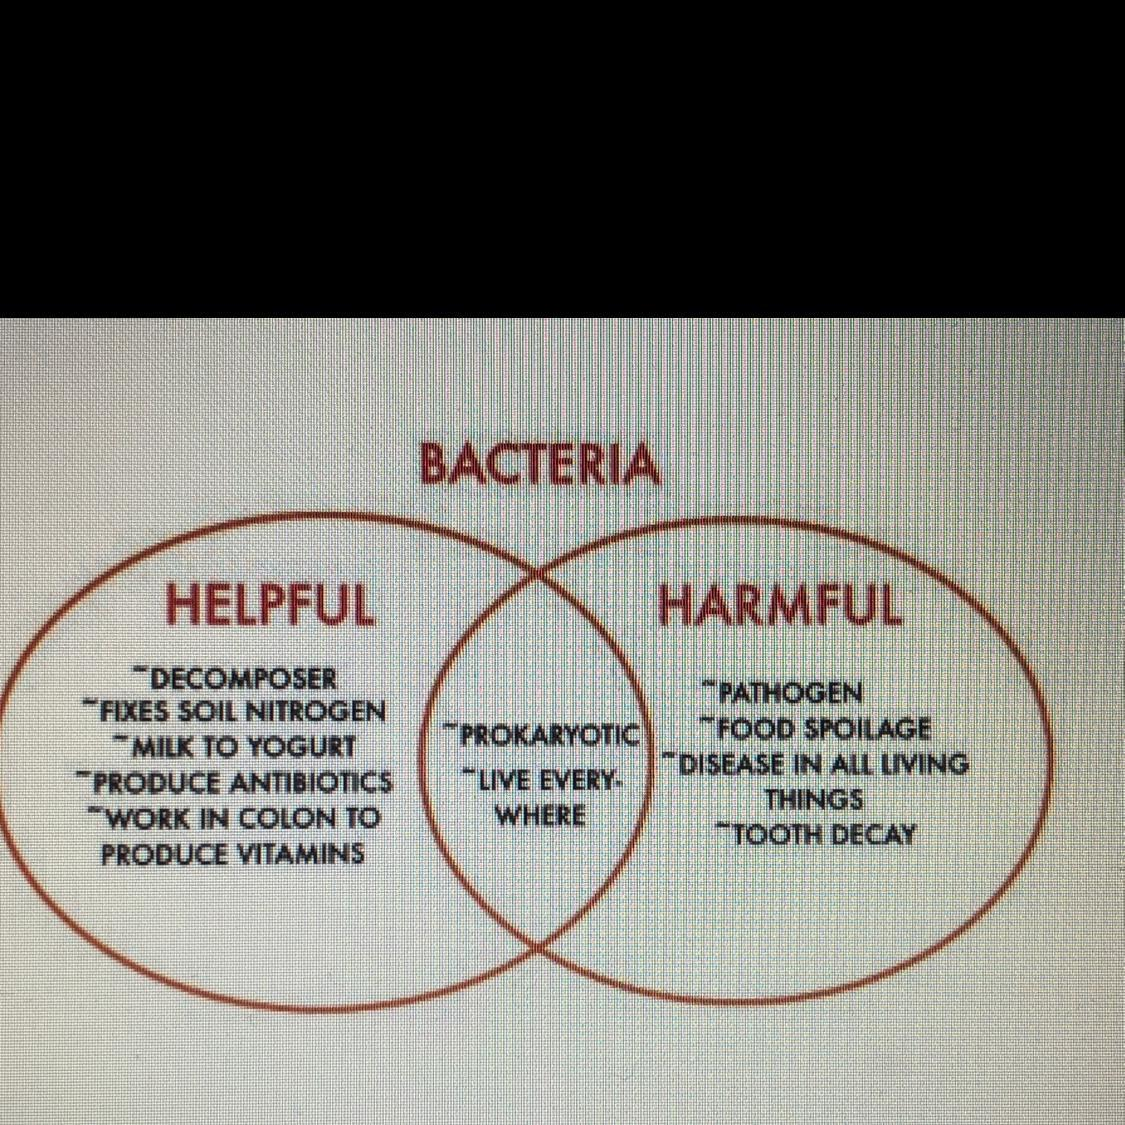 the venn diagram details some of the helpful and harmful effects of bacteria  in what ways are